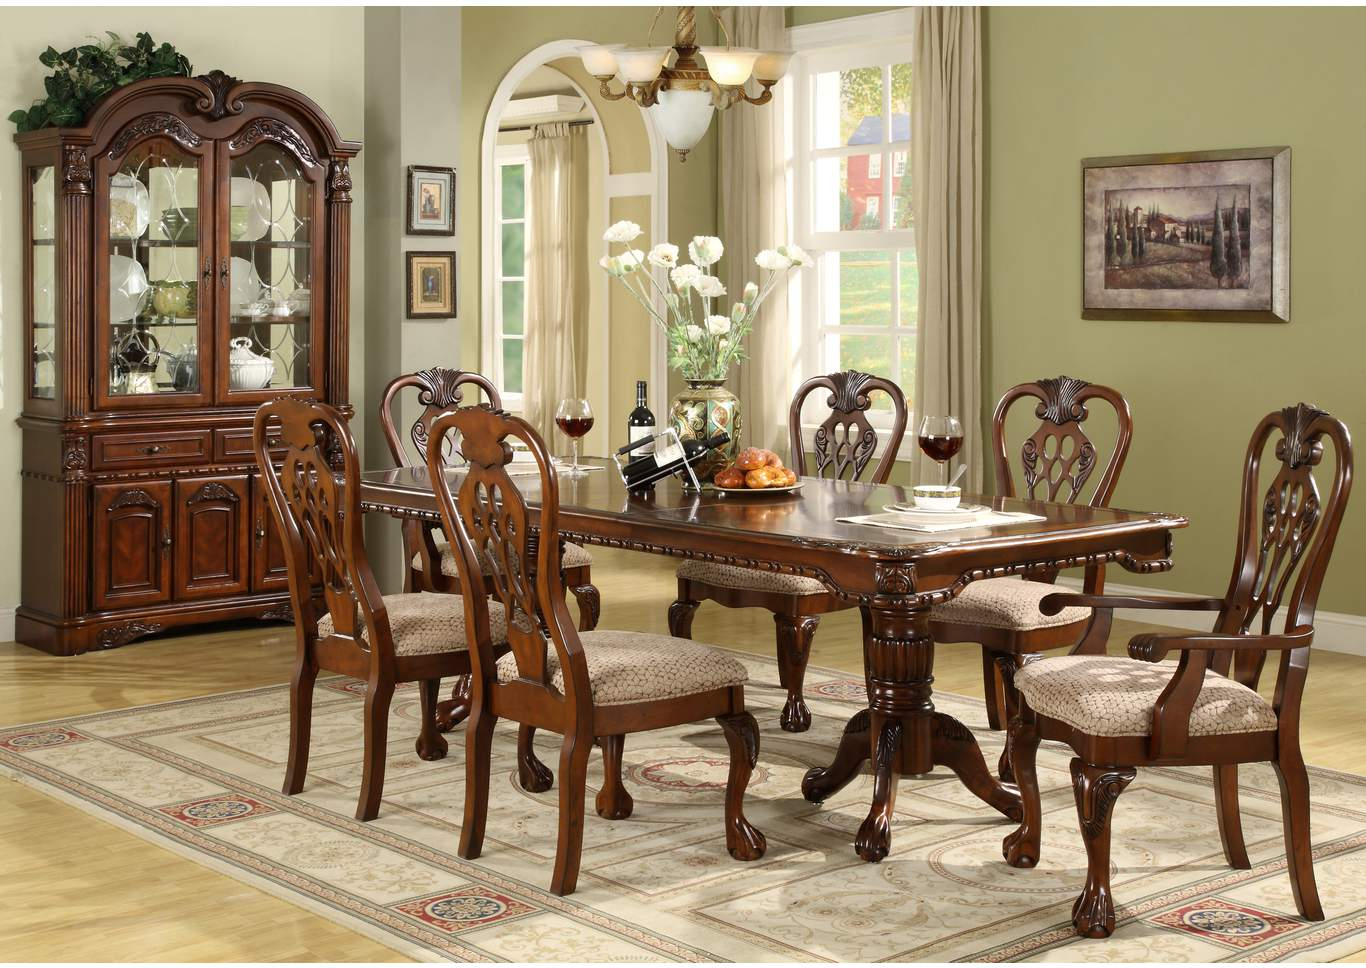 dining room brussels dining table w 4 side chairs and 2 arm chairs